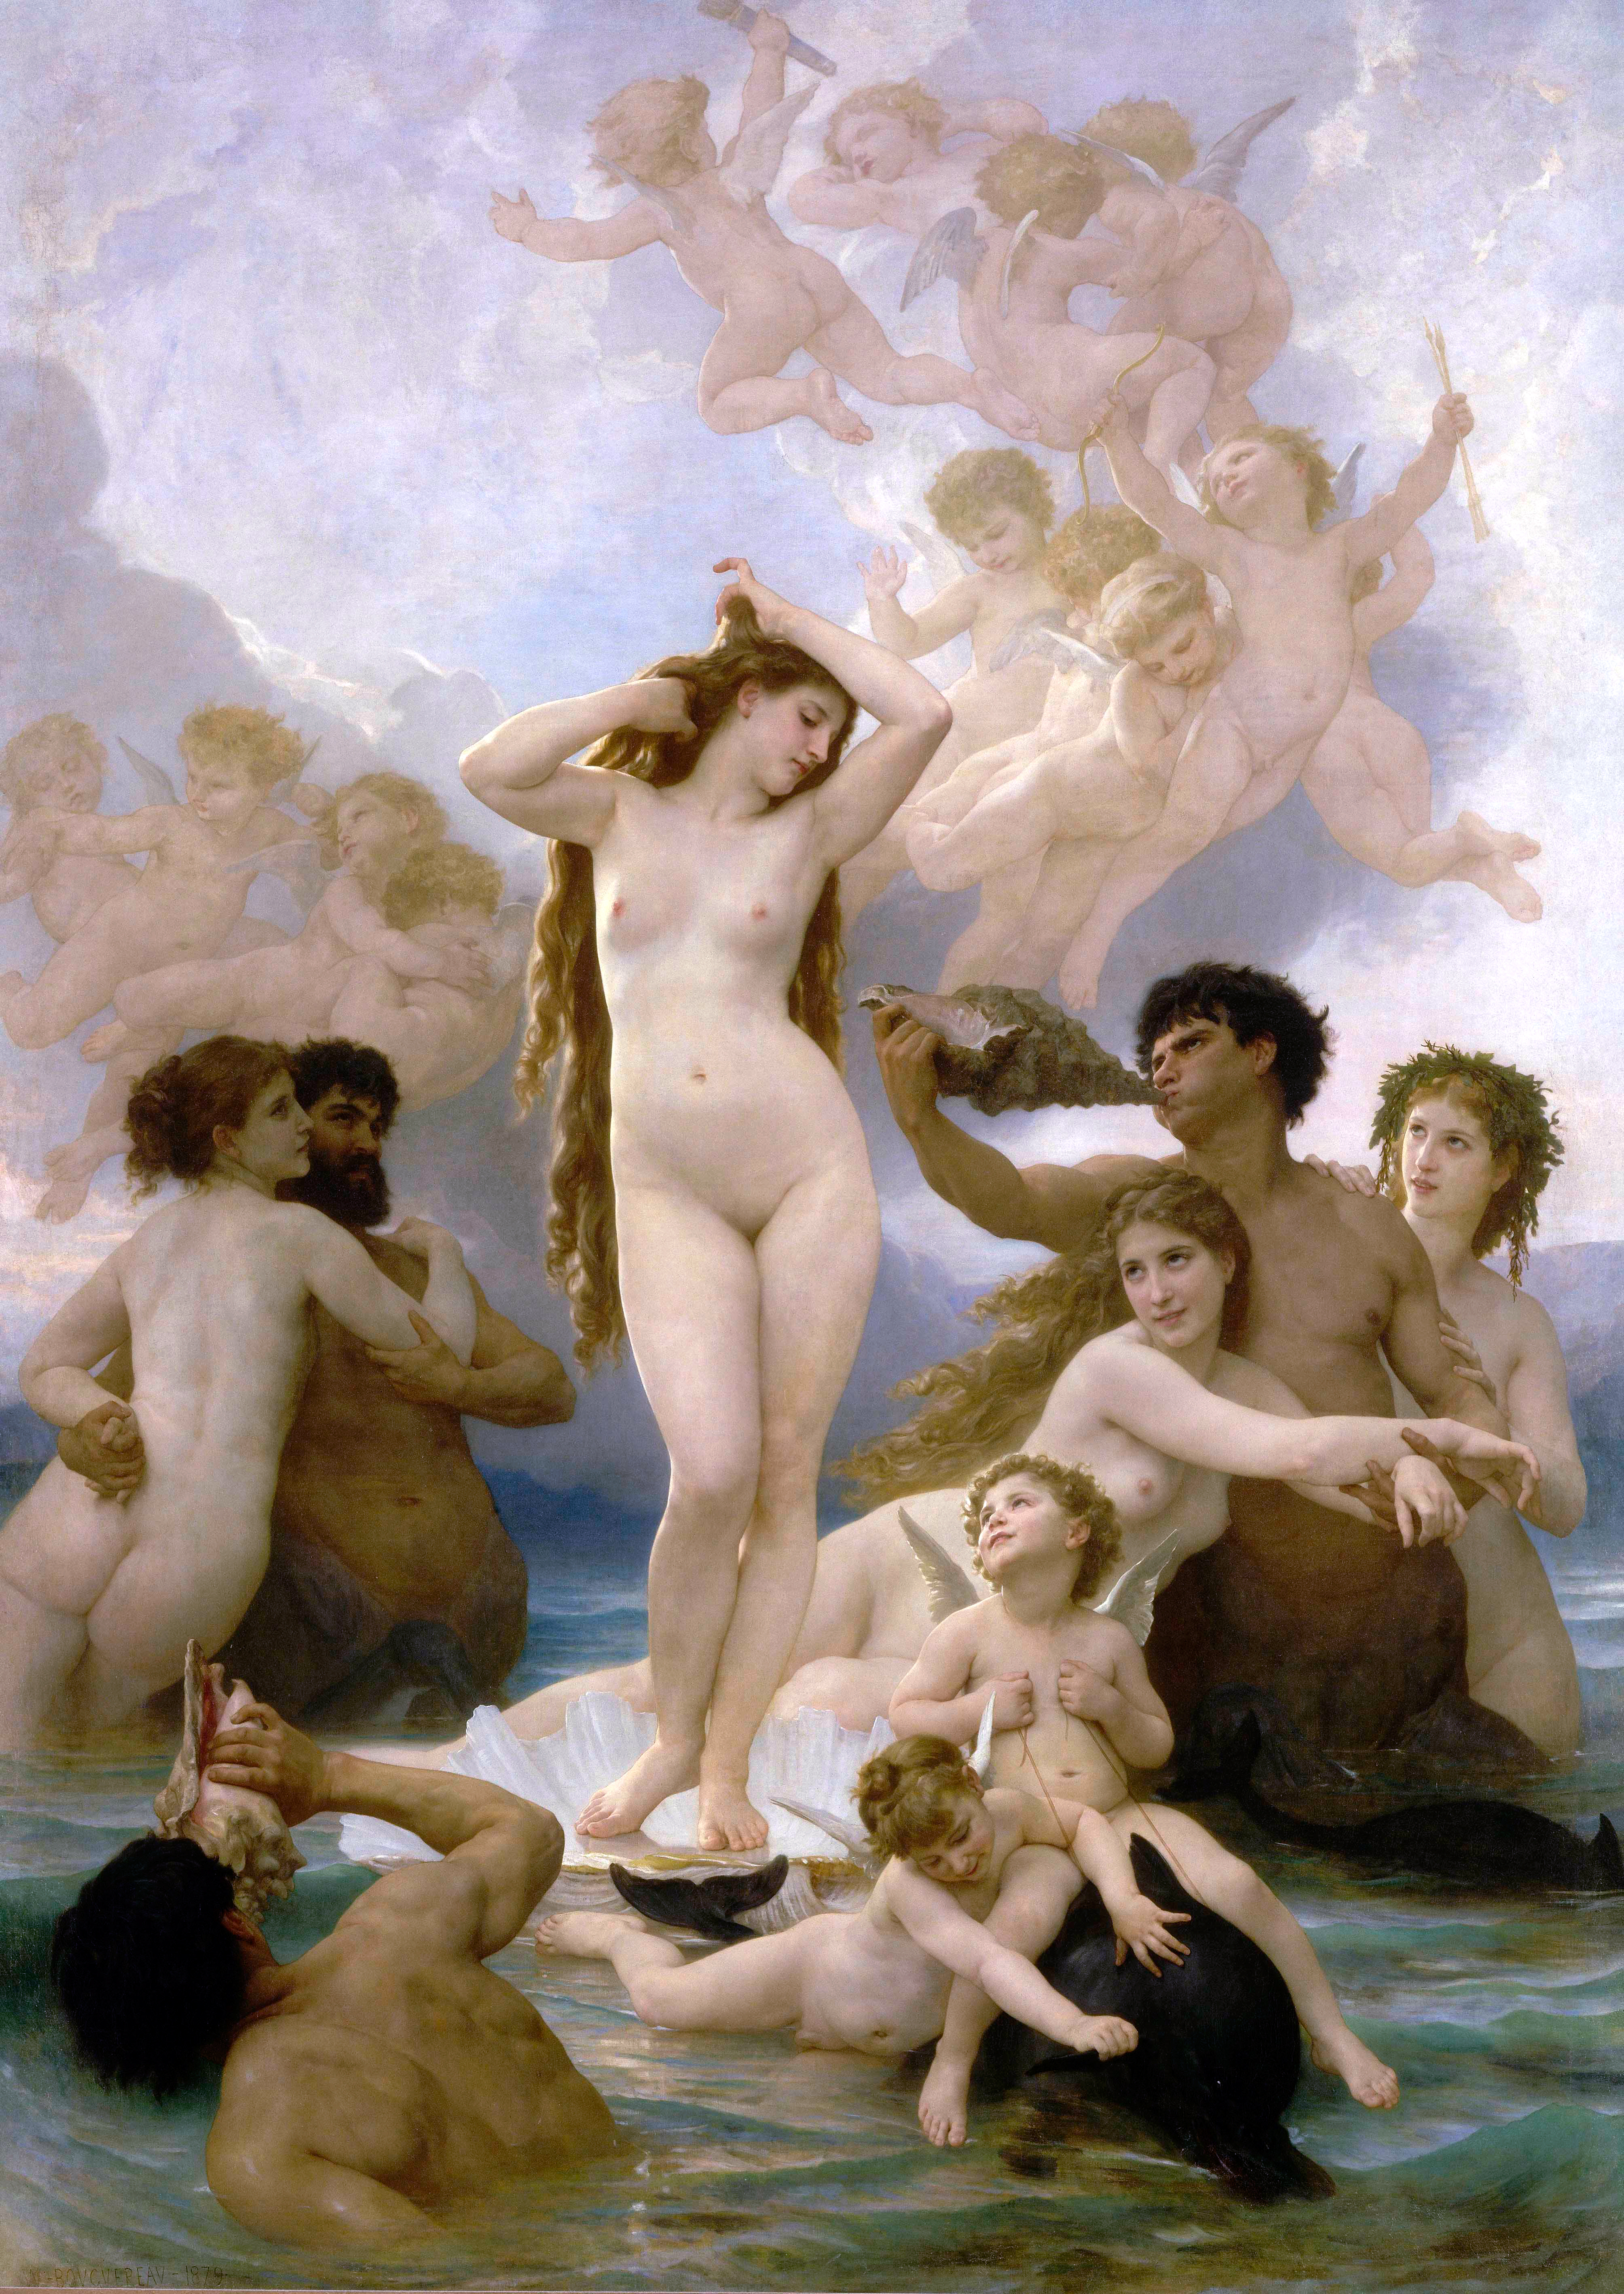 File:William-Adolphe Bouguereau (1825-1905) - The Birth of Venus ...